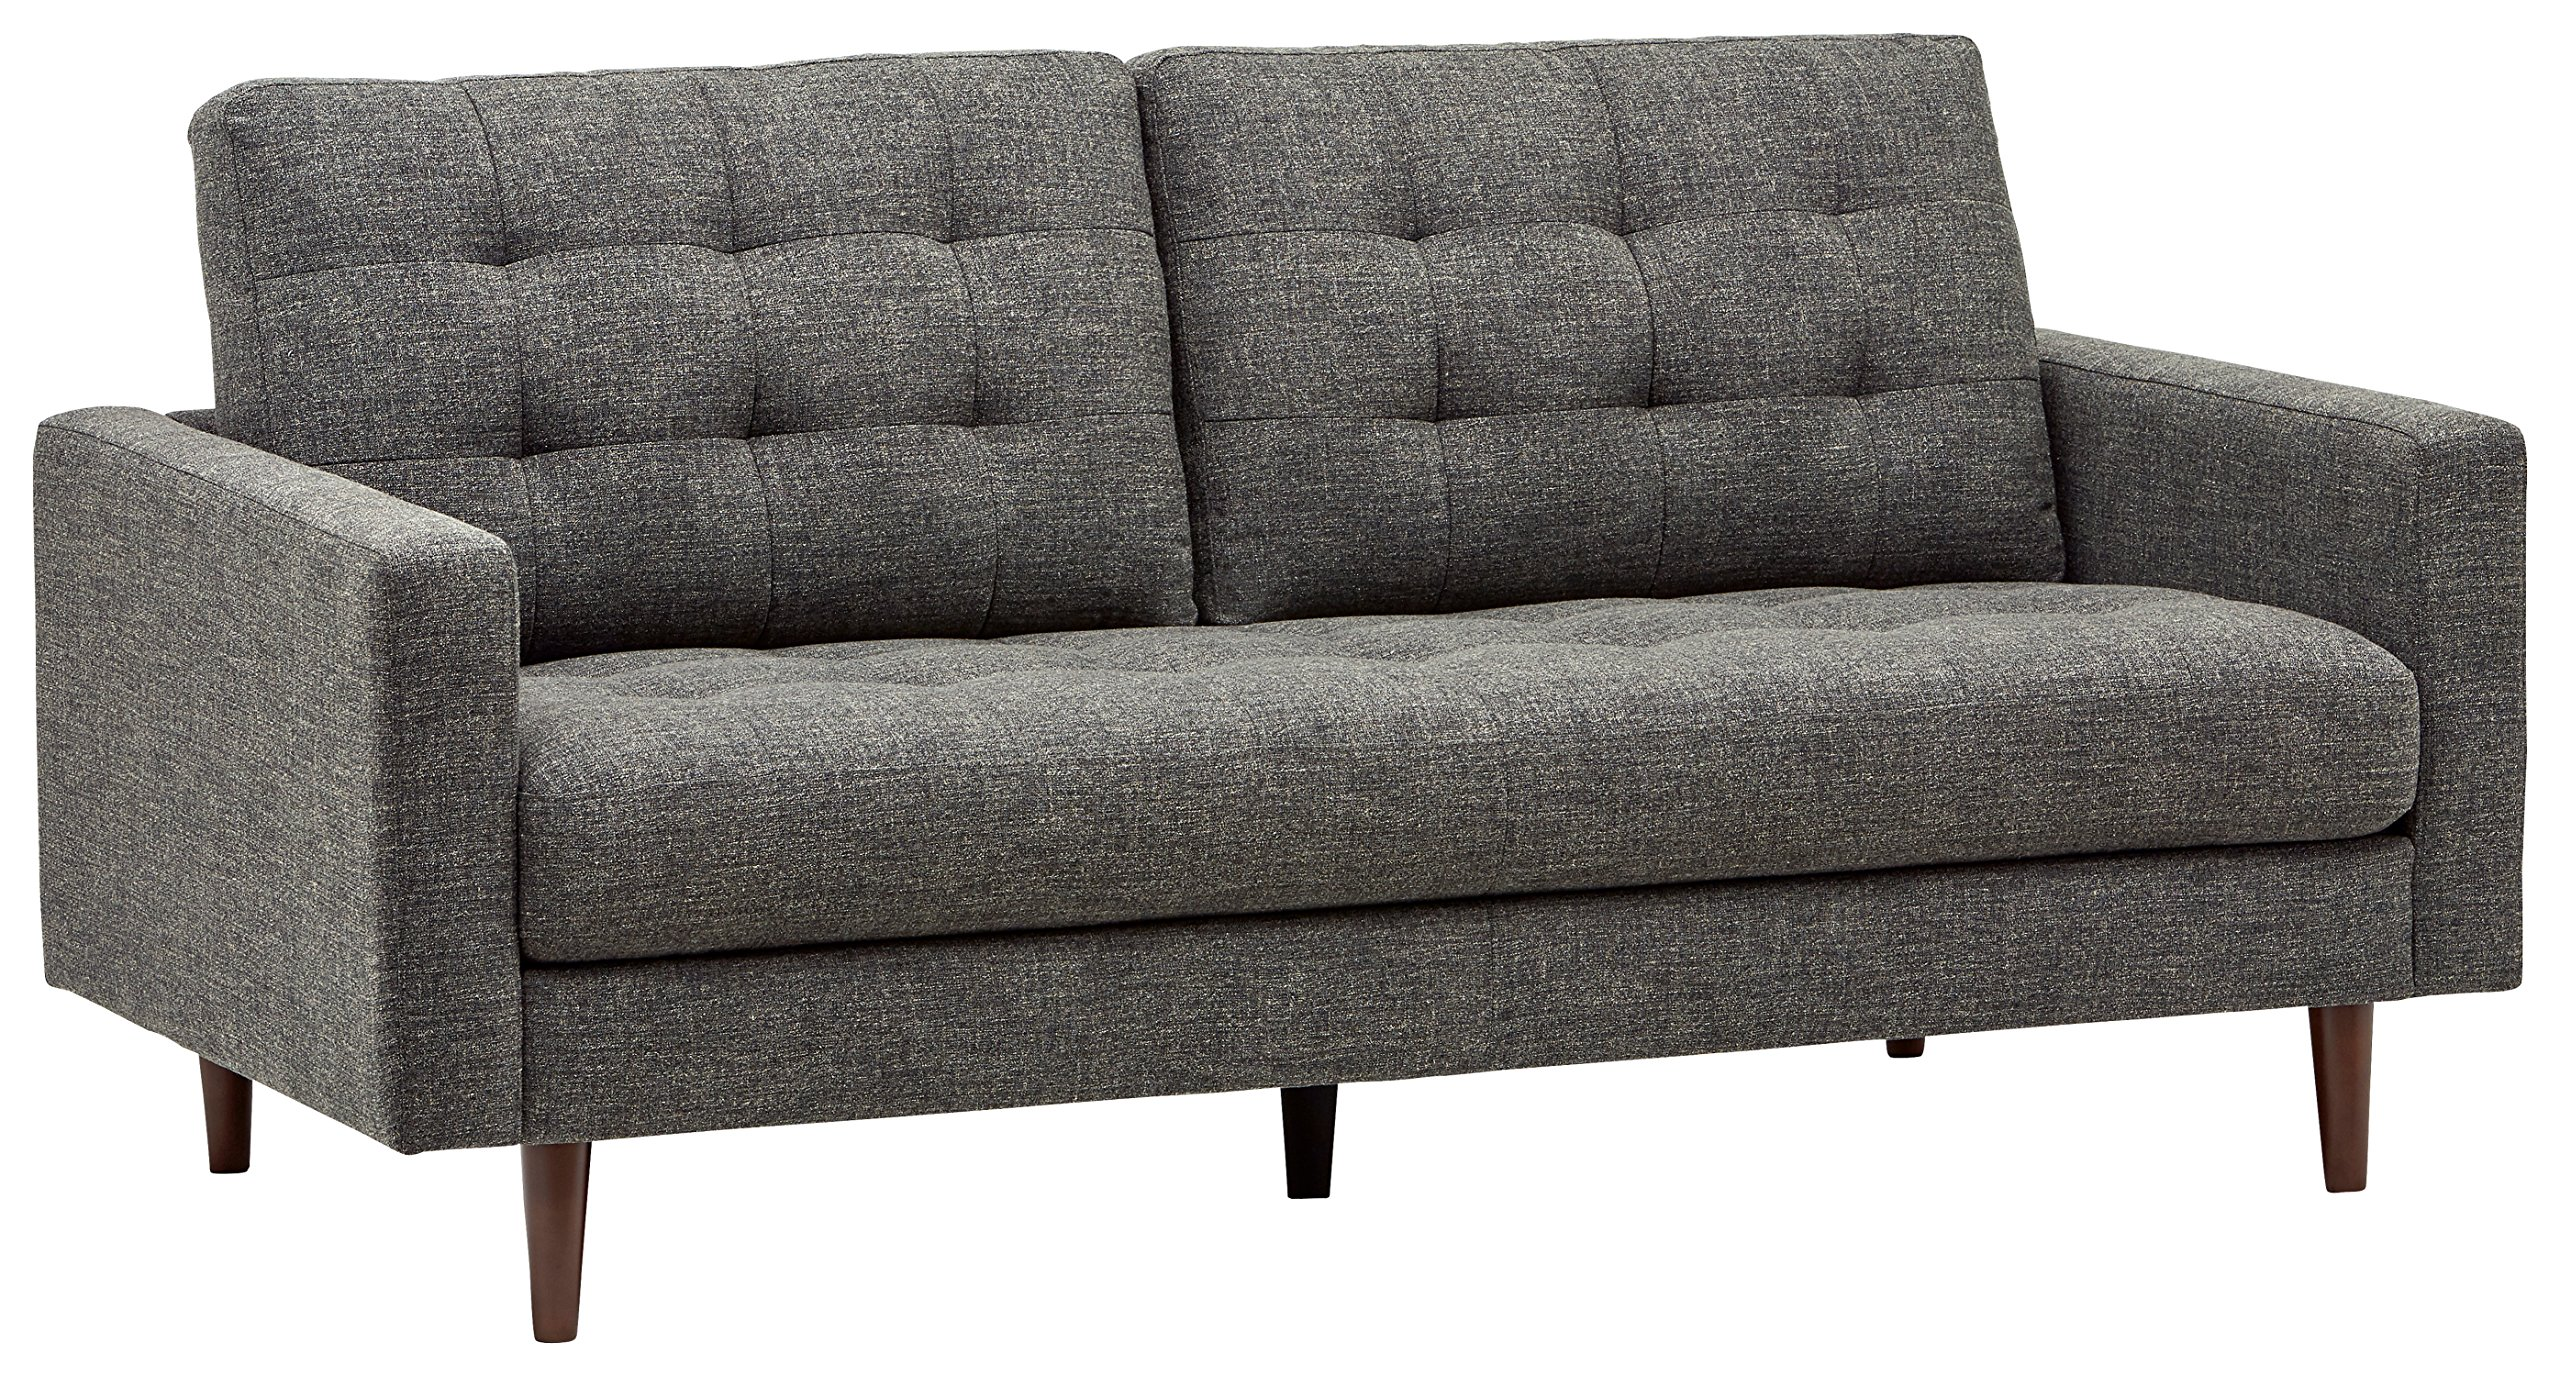 Rivet Cove Mid-Century Modern Tufted Sofa with Tapered Legs, 72''W, Dark Grey by Rivet